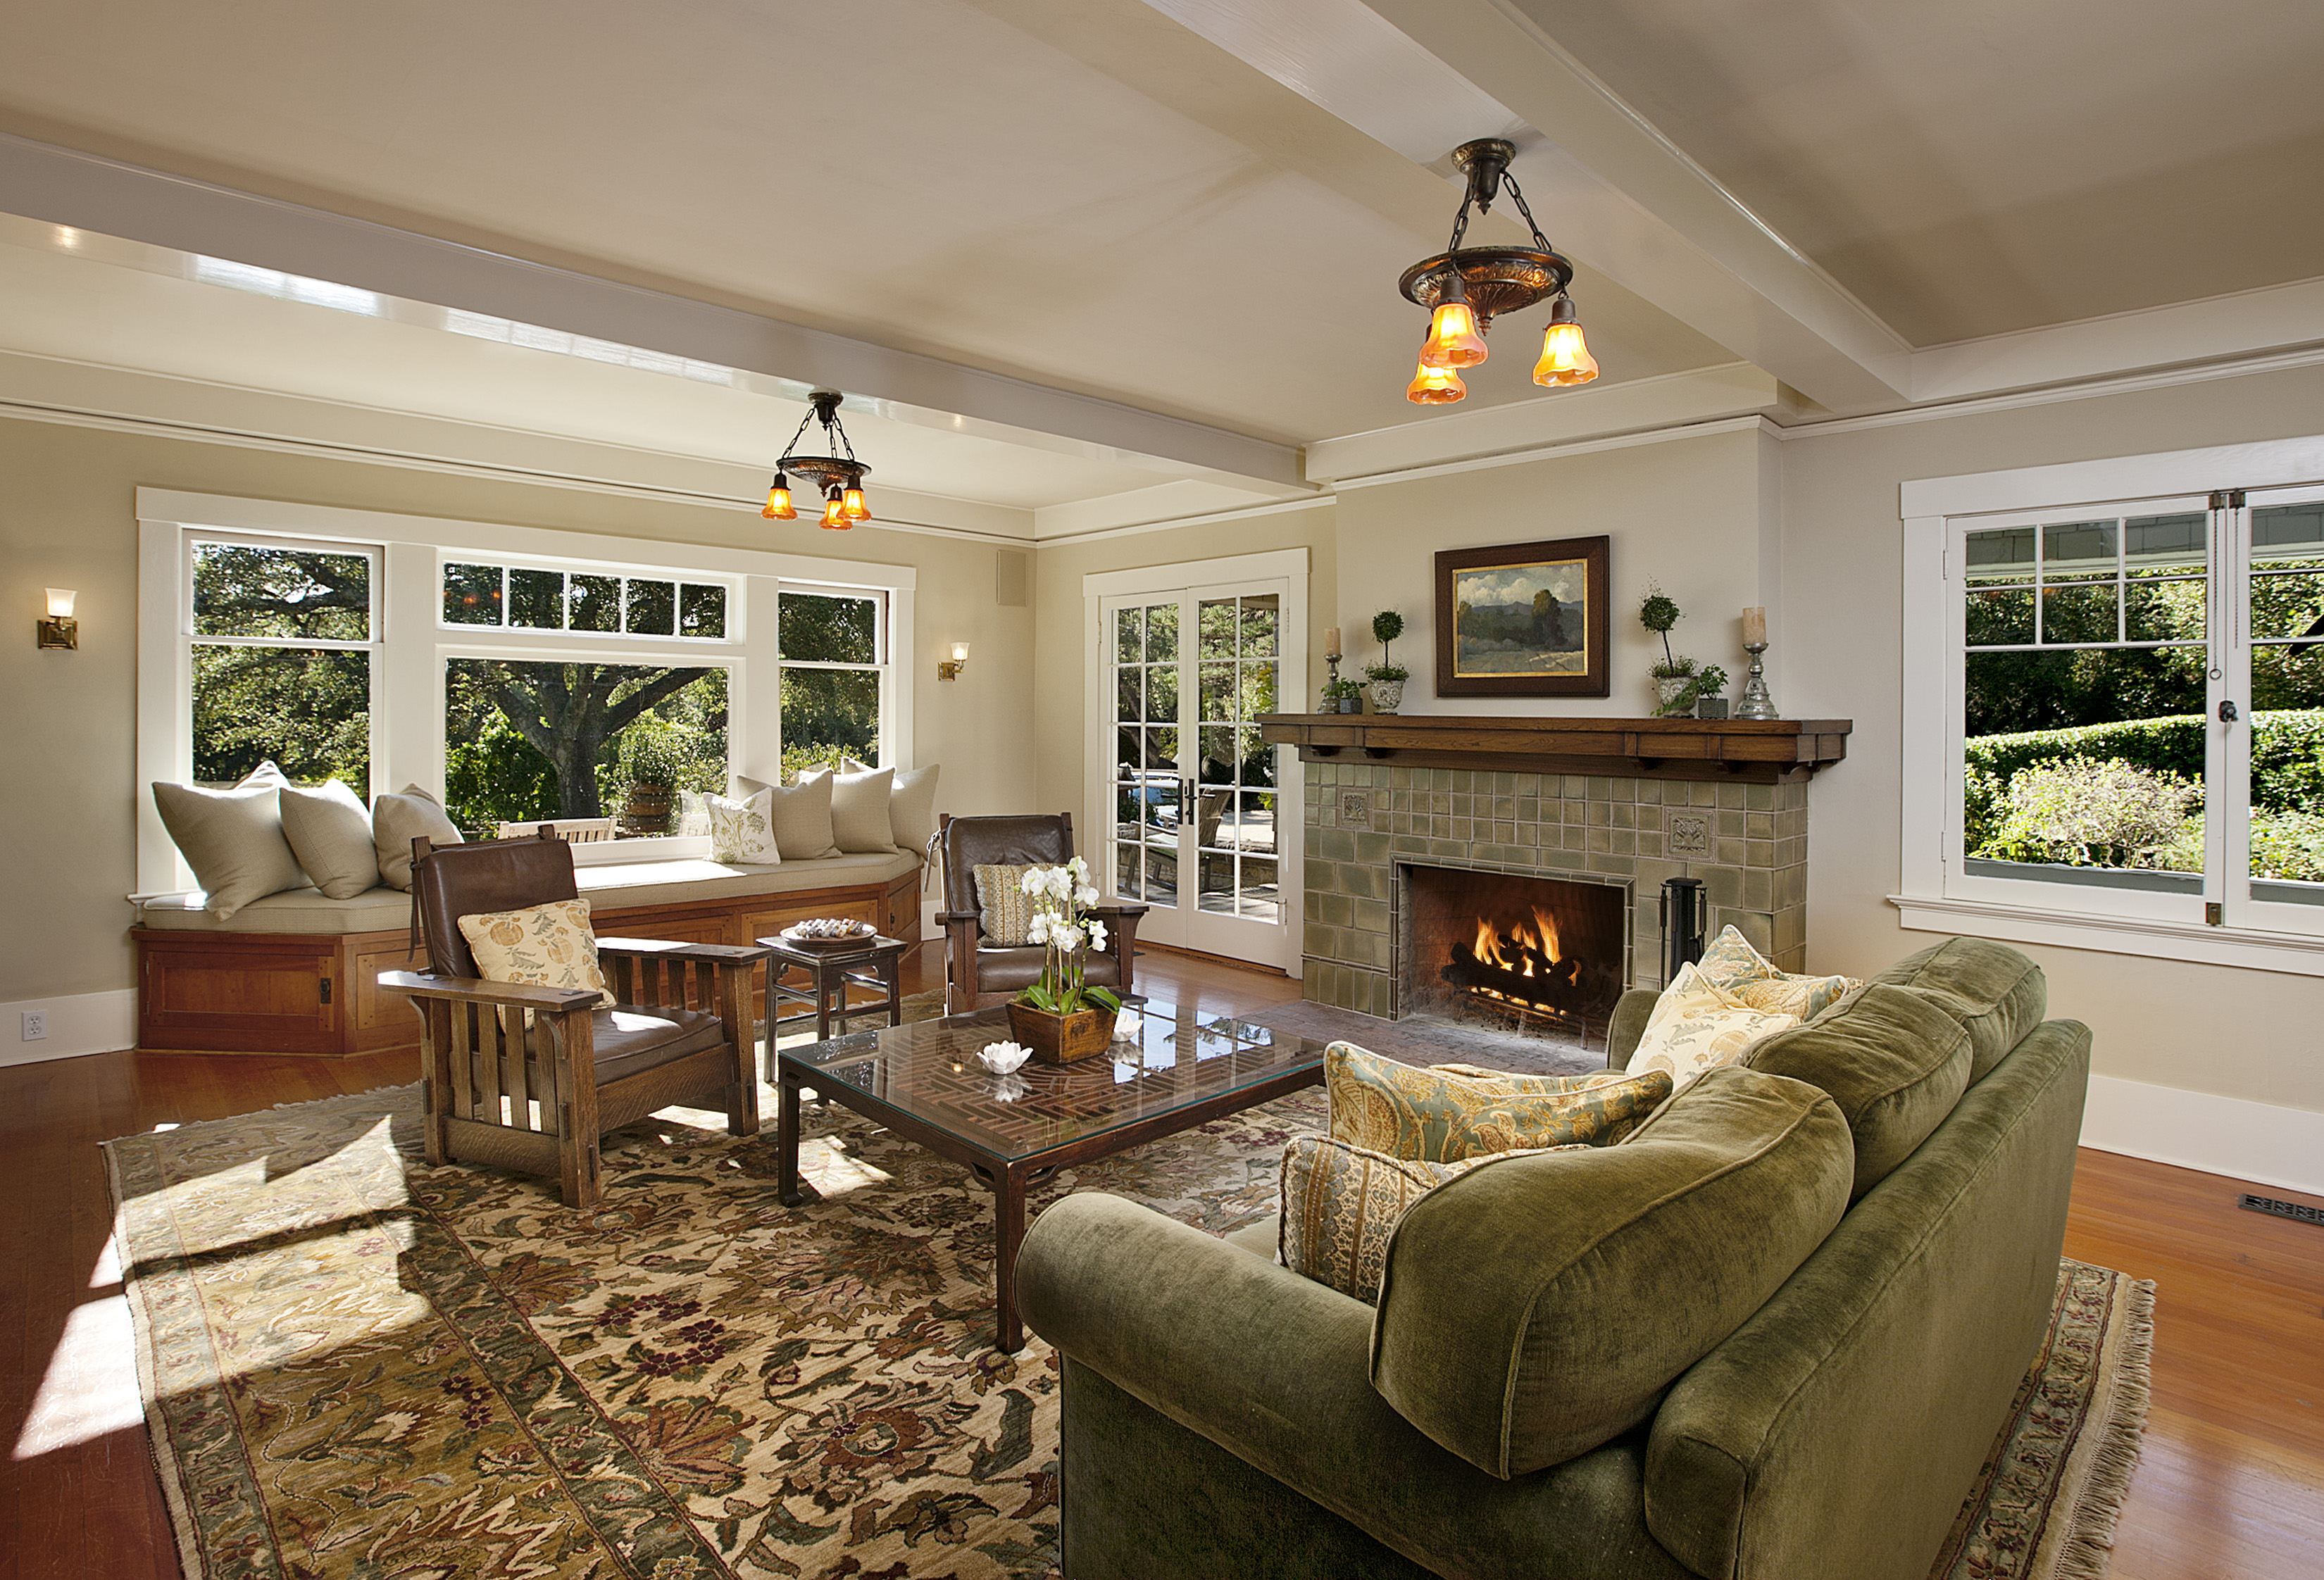 Popular home styles for 2012 montecito real estate - Interior design styles living room ...